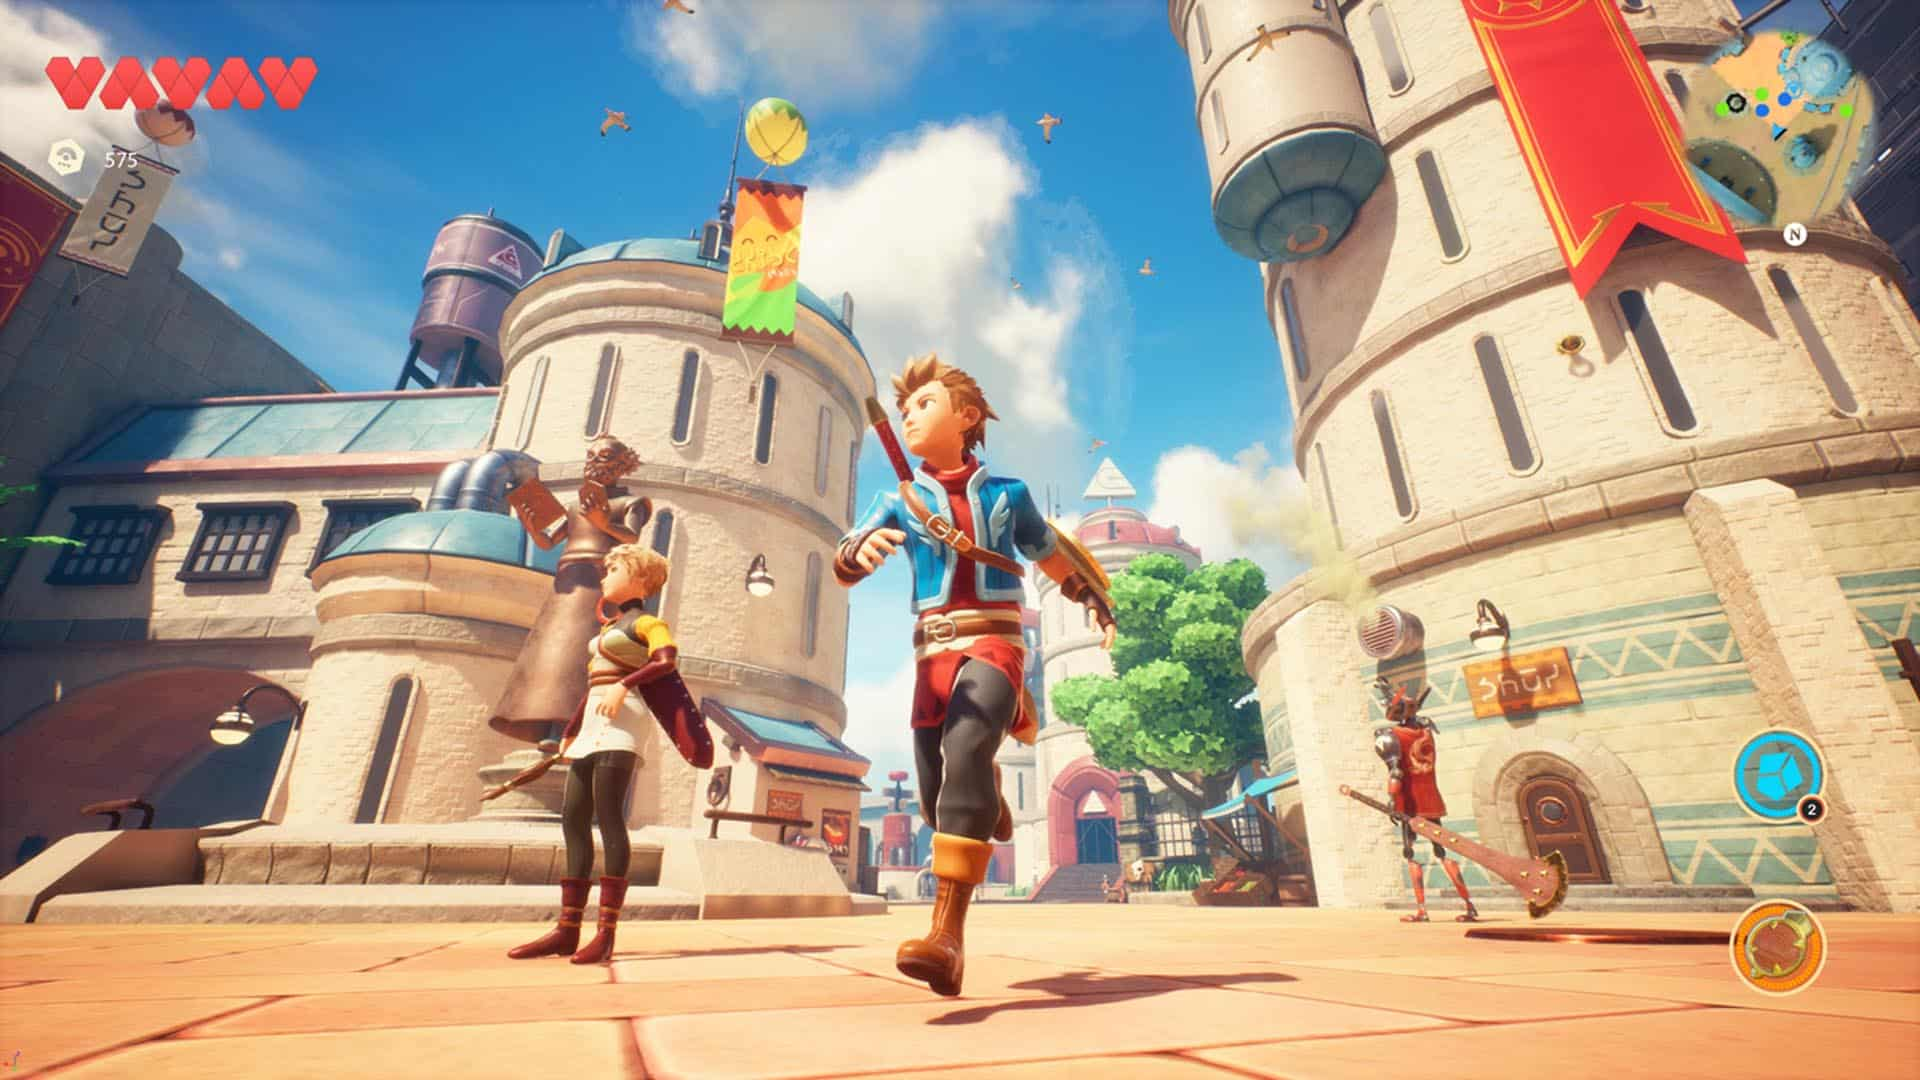 NSwitchDS Oceanhorn2KnightsOfTheLostRealm 02